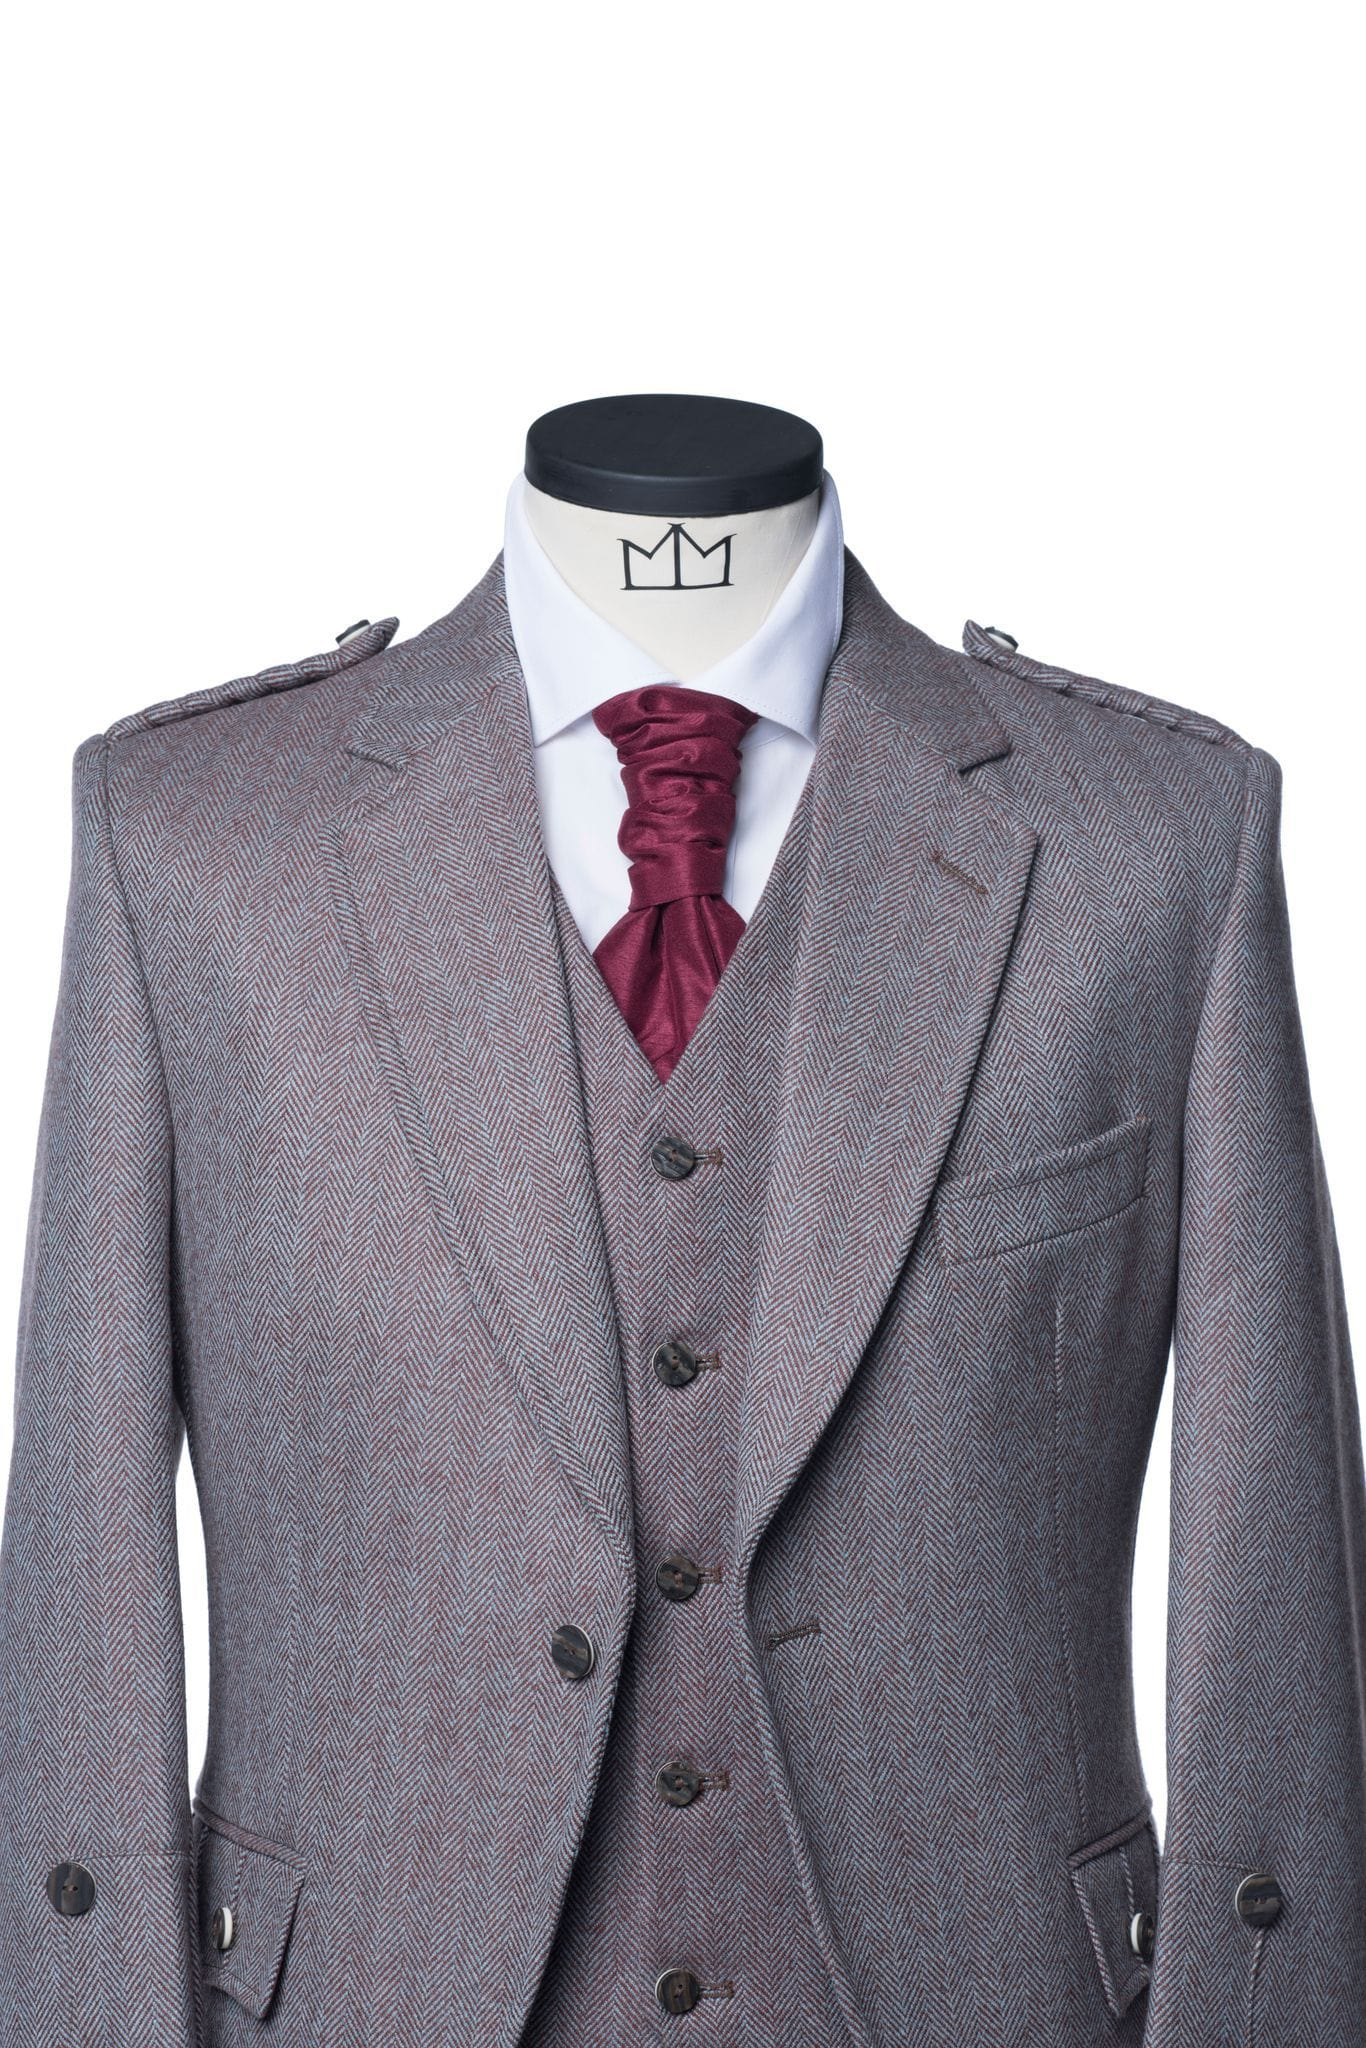 Mens Tartan Trews Outfit - MacGregor and MacDuff